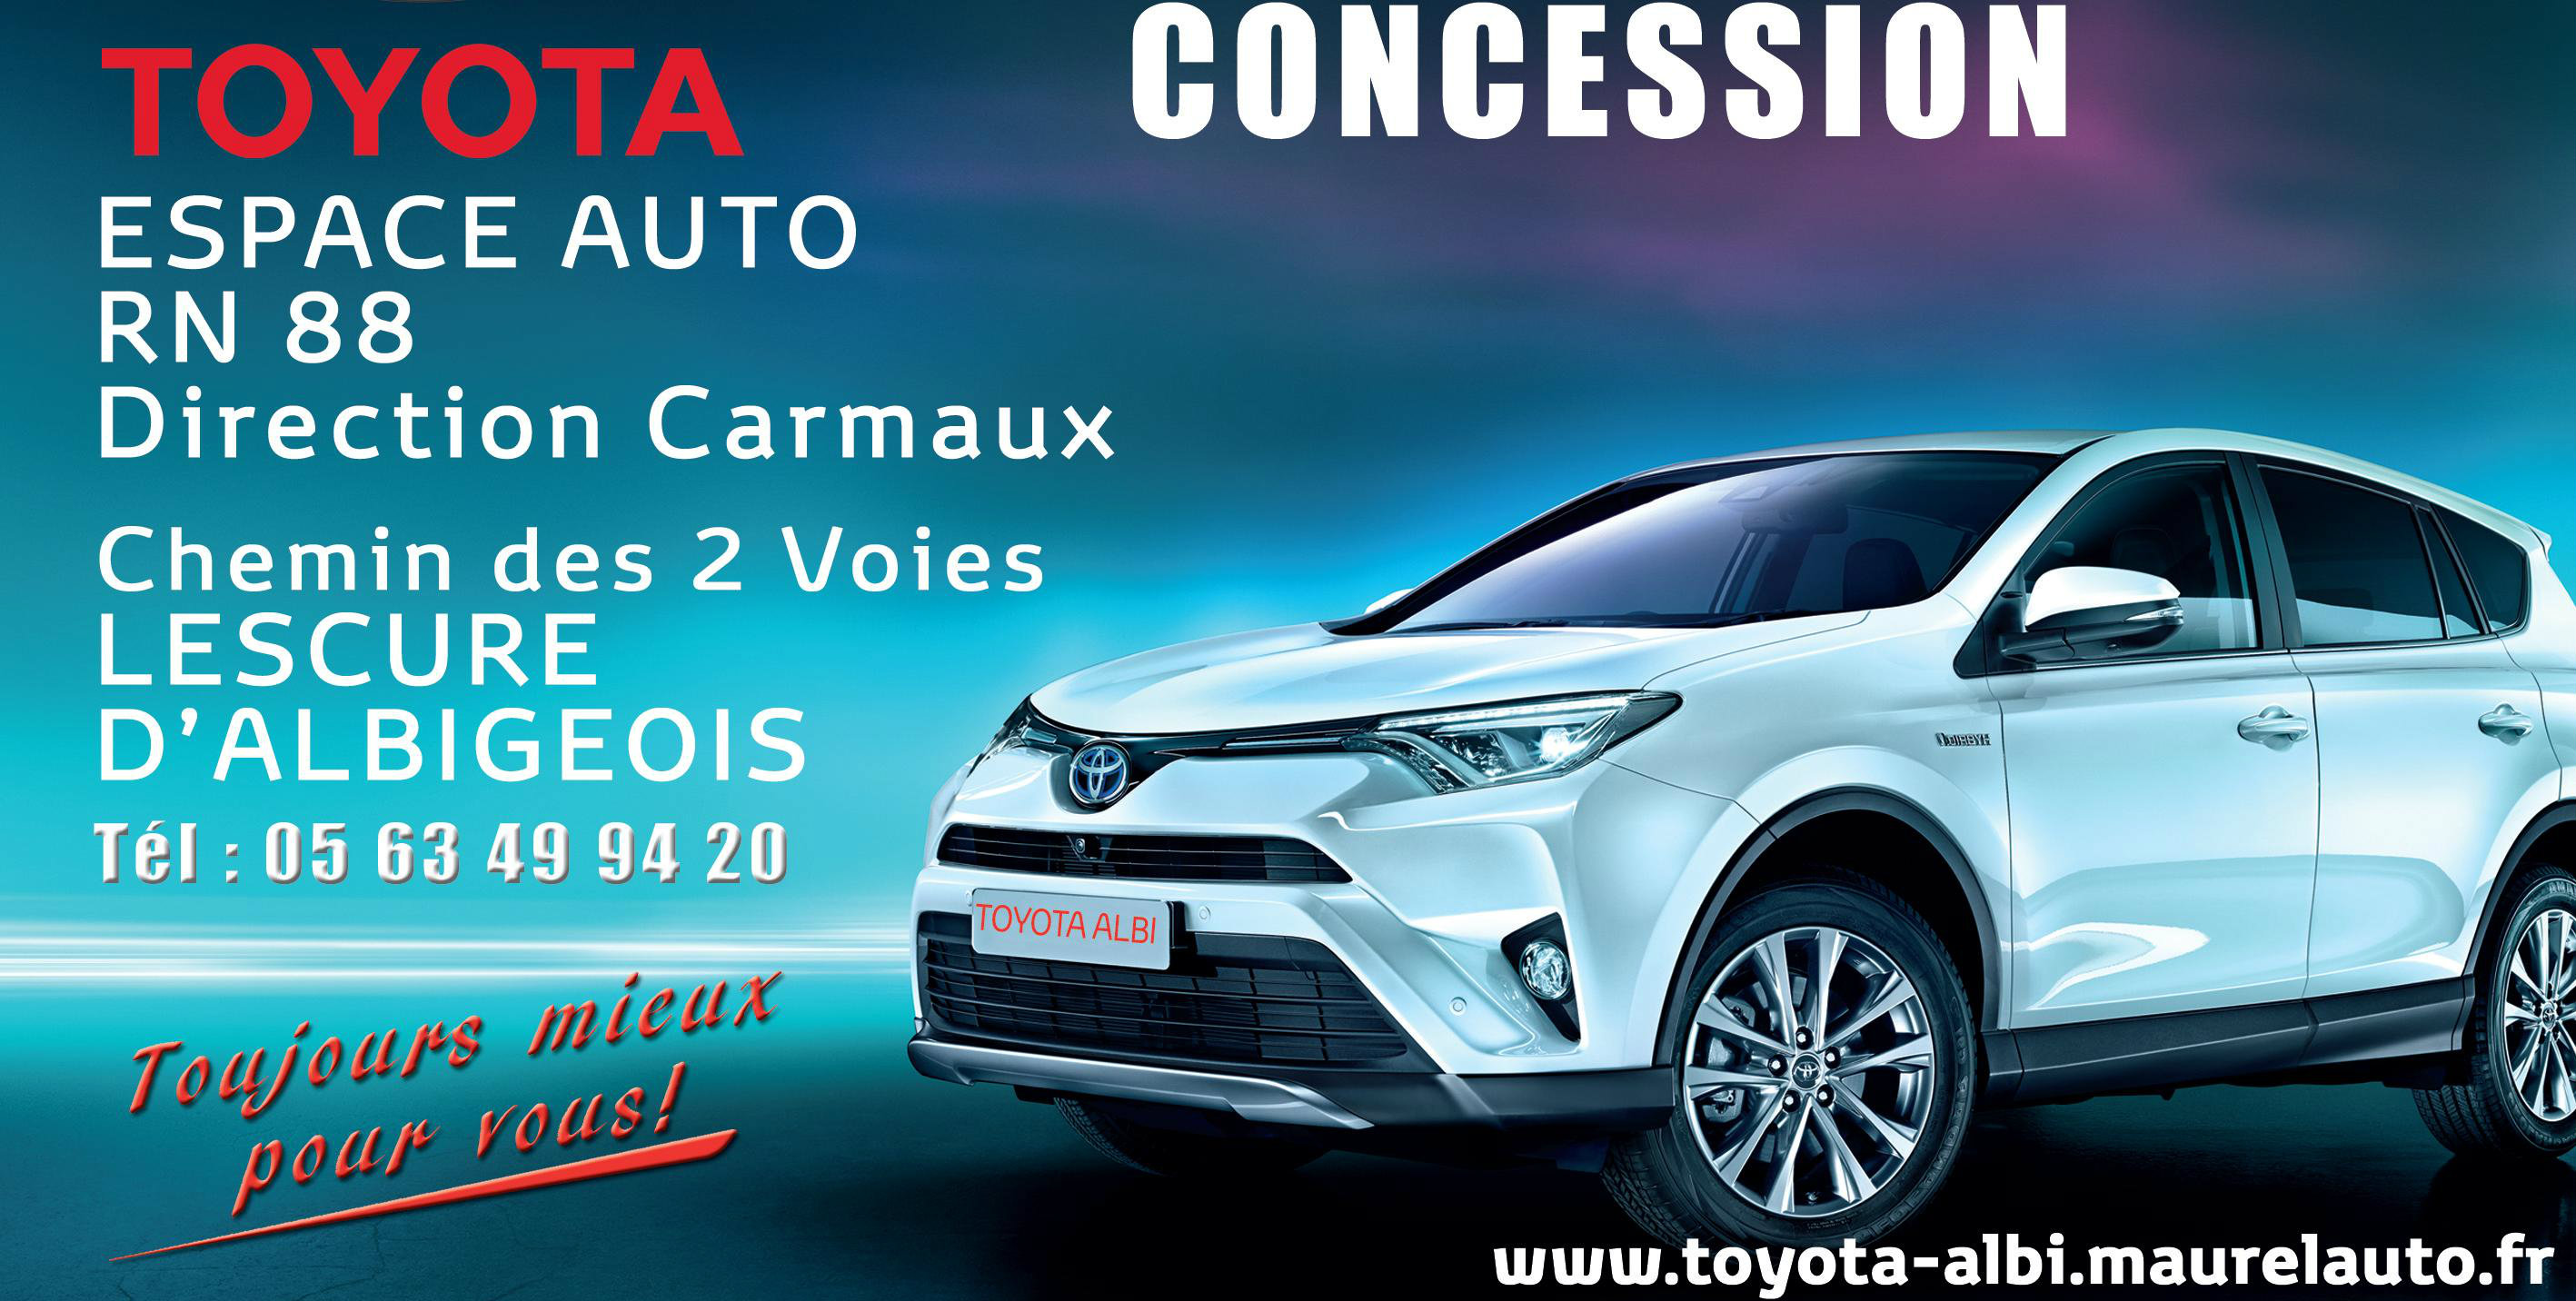 invitation toyota espace auto visite et d gustation blog maurel auto. Black Bedroom Furniture Sets. Home Design Ideas